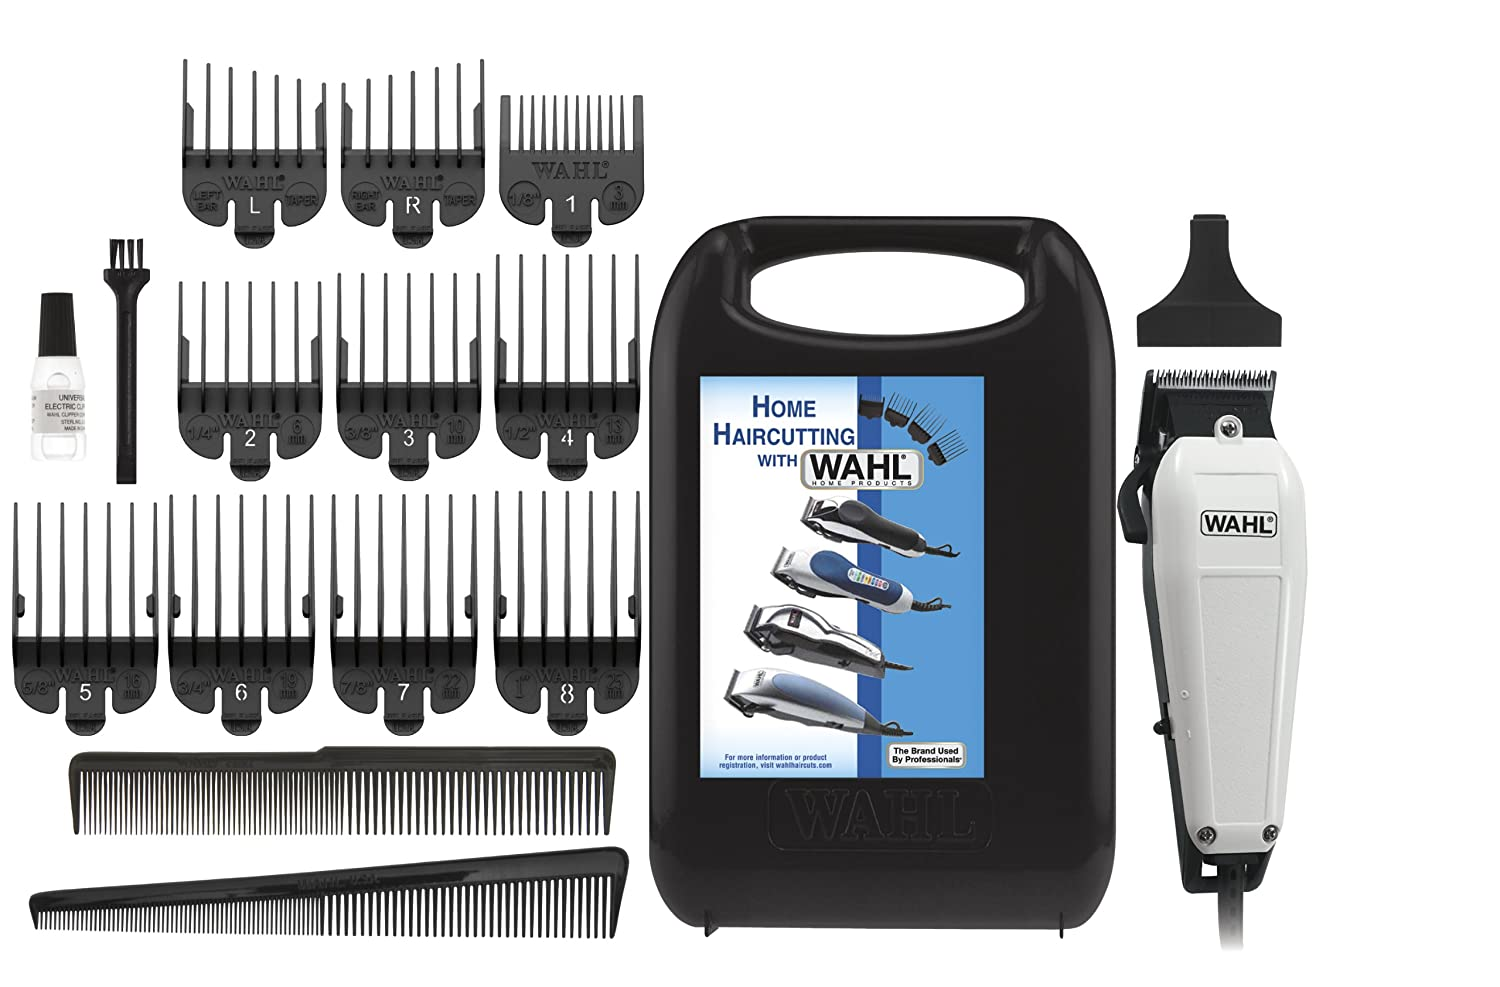 Wahl 10-10 The Styler 10 Piece Complete Haircutting Kit